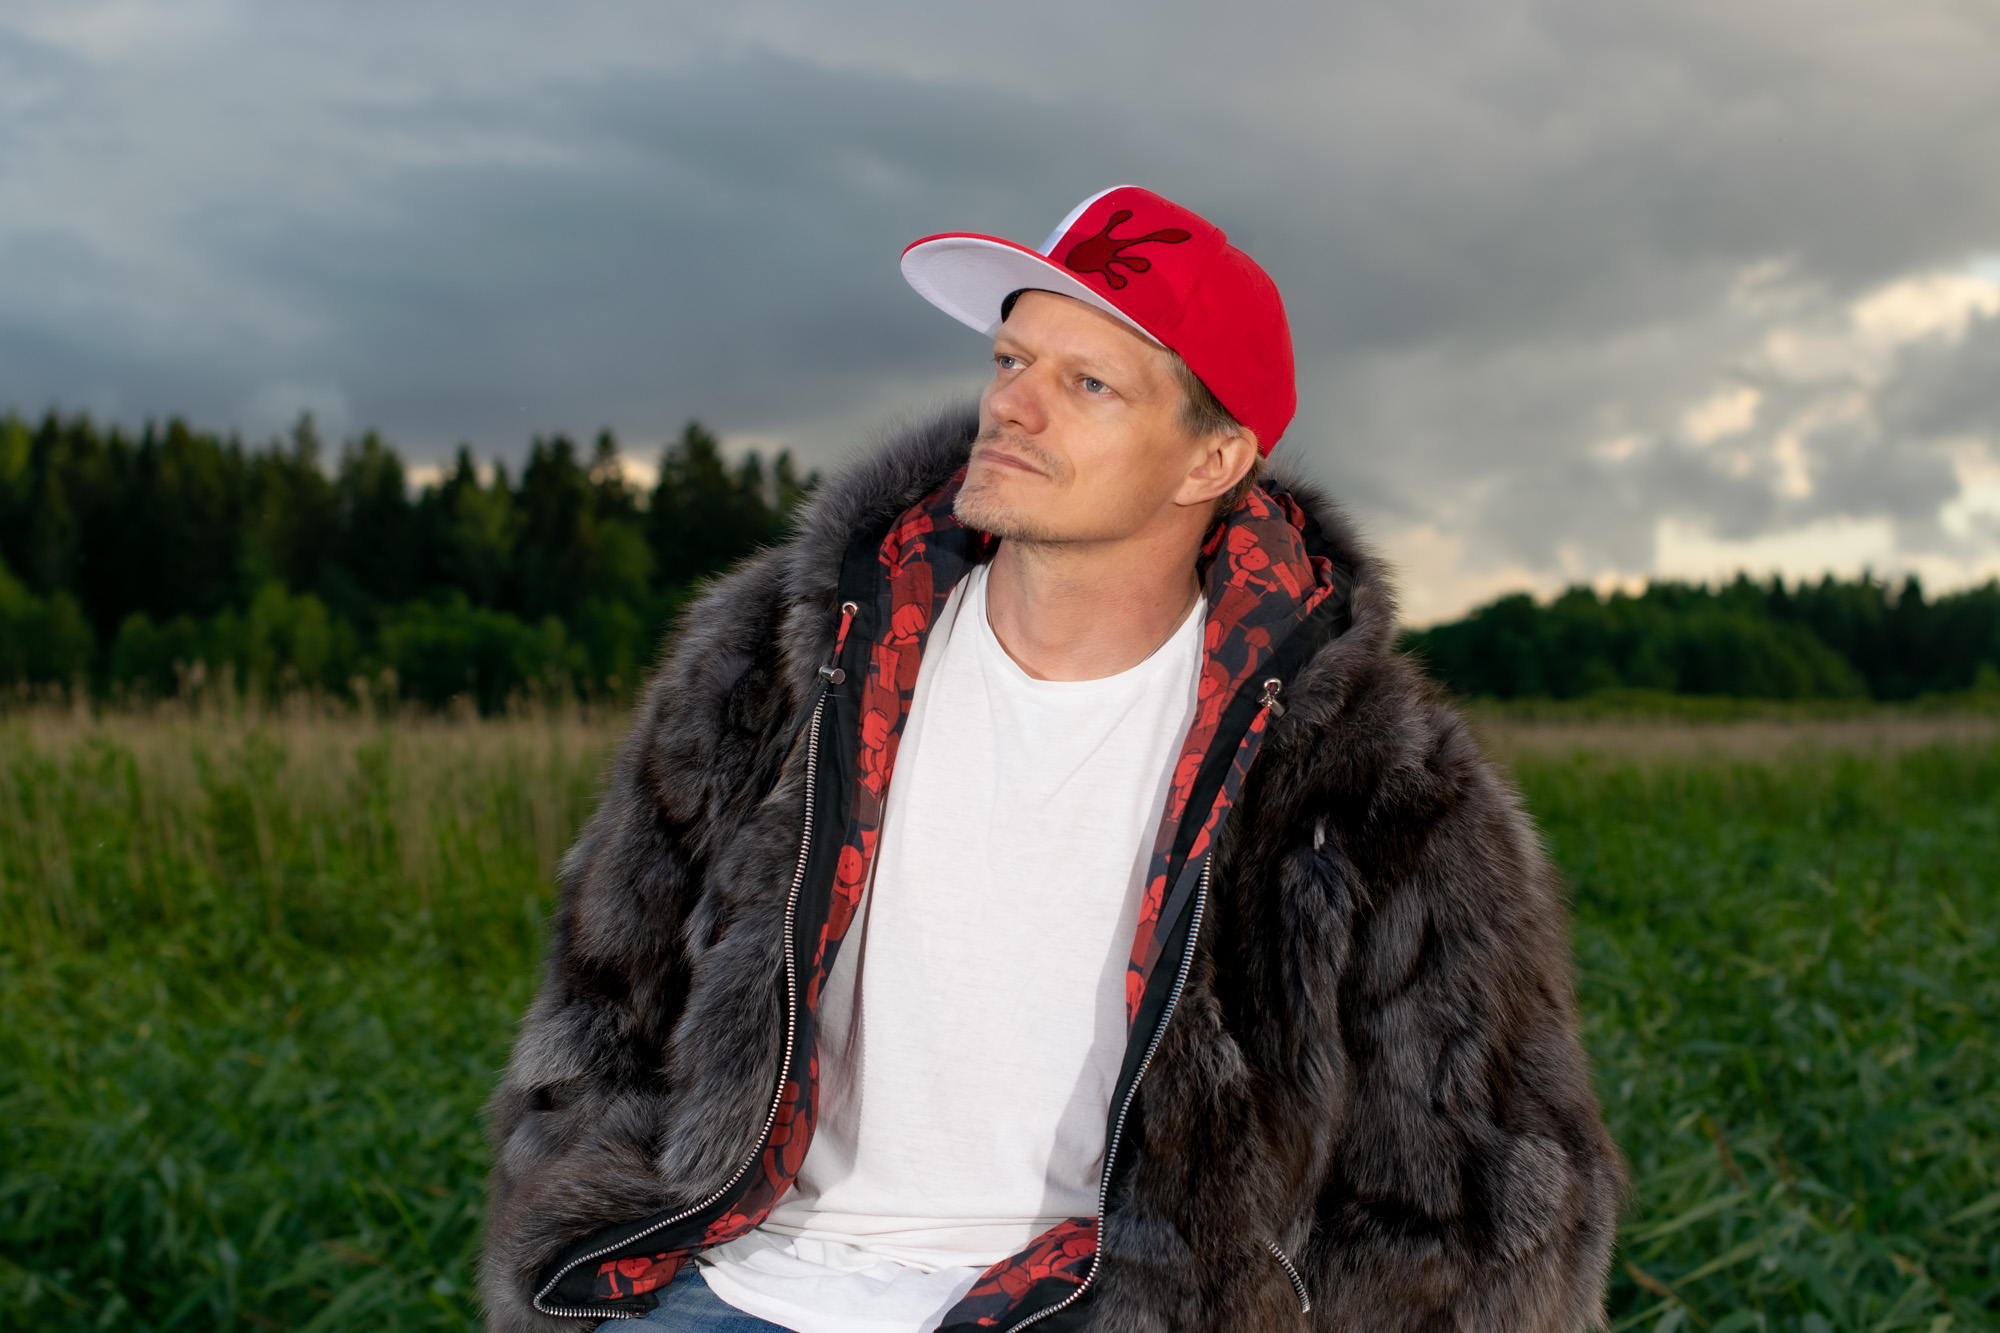 Screw Them All Red&White Snapback hat with fur hoodie from The Hoodie